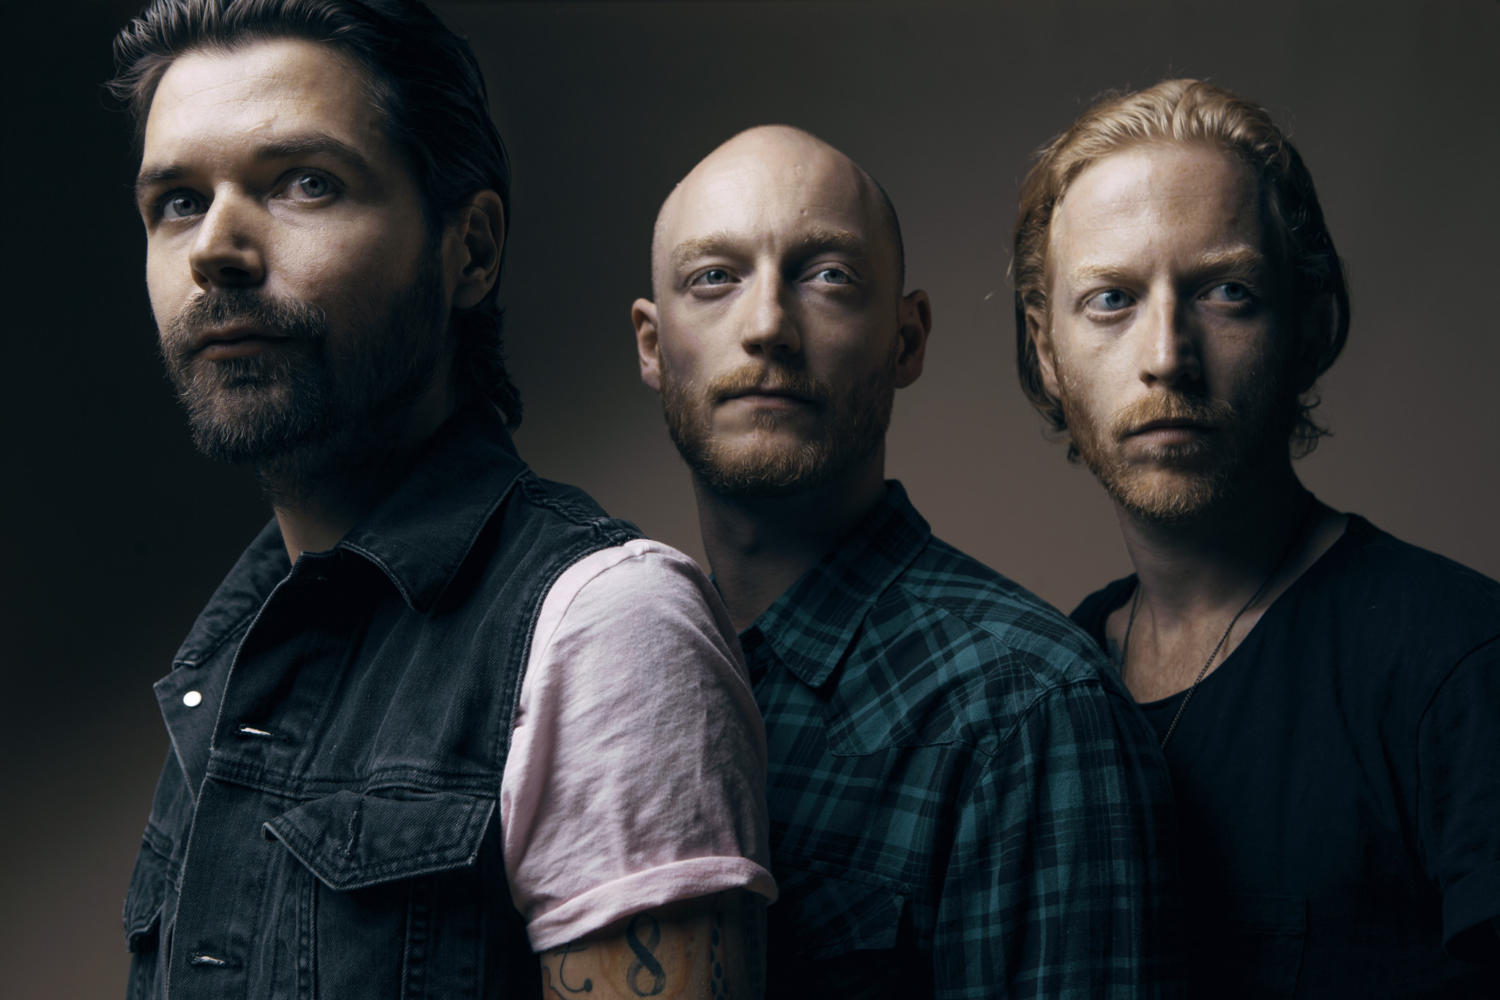 Biffy Clyro Iphone Wallpaper Biffy Clyro Wallpapers High Quality Download Free